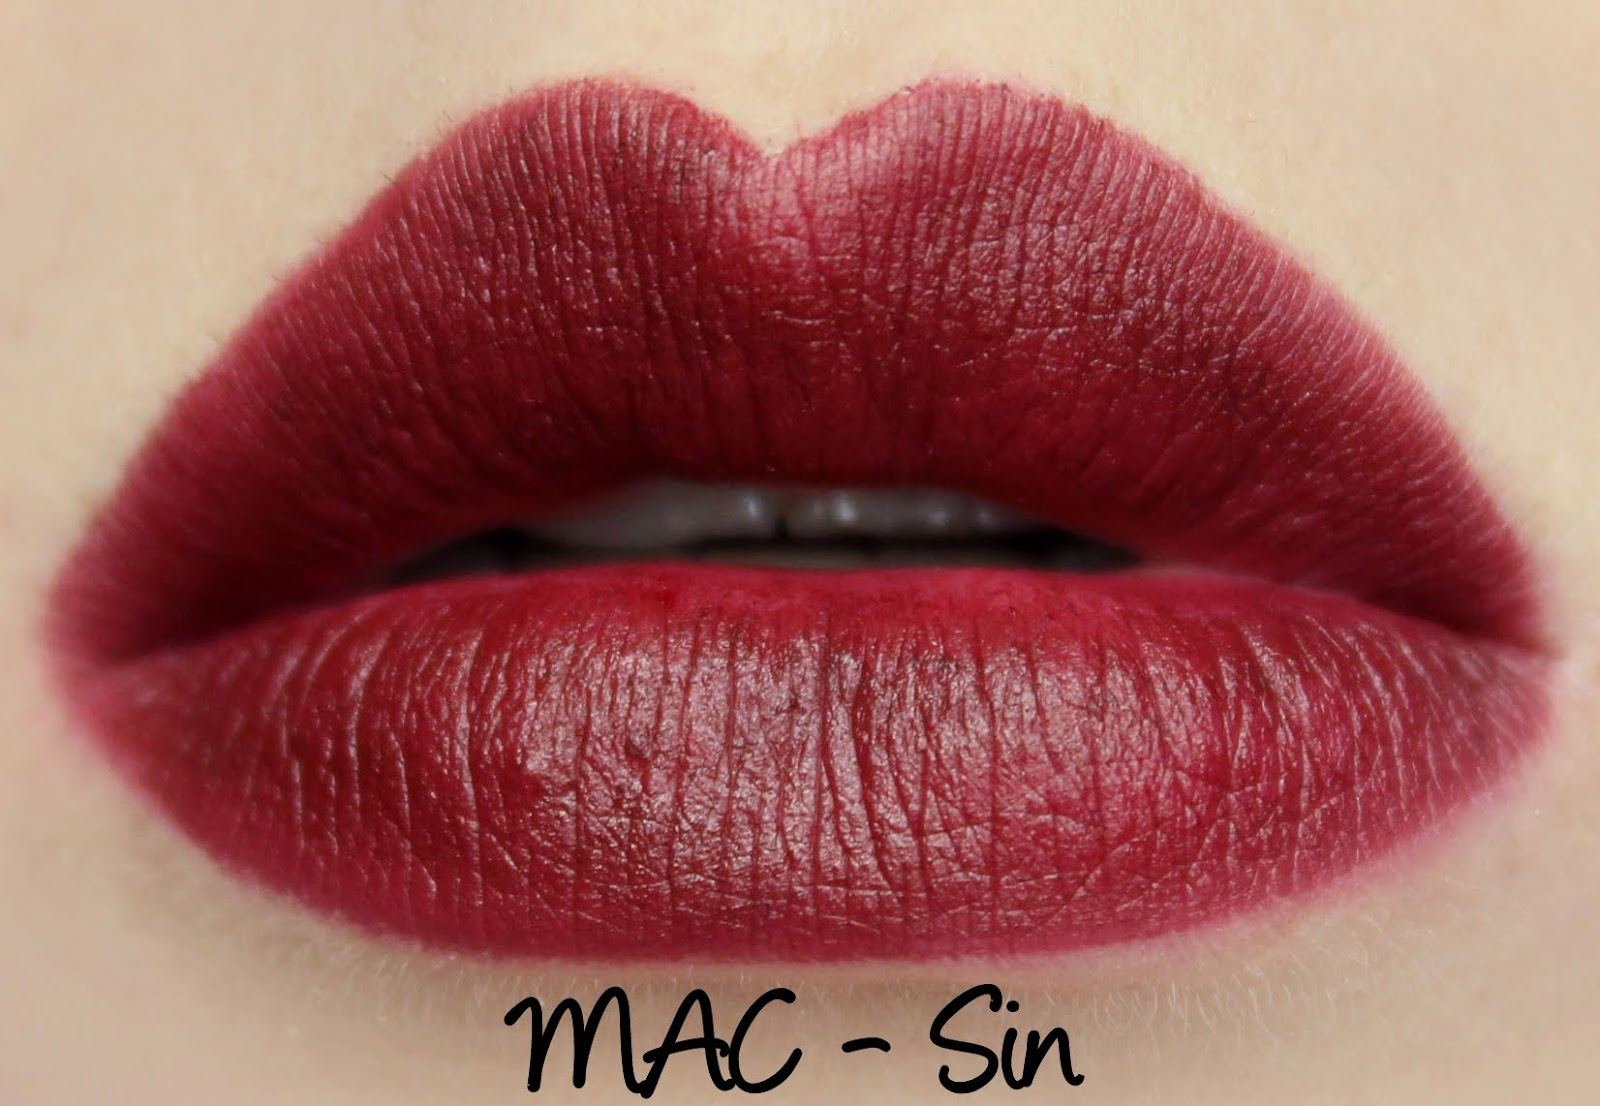 MAC Toledo - Sin Lipstick Swatches & Review